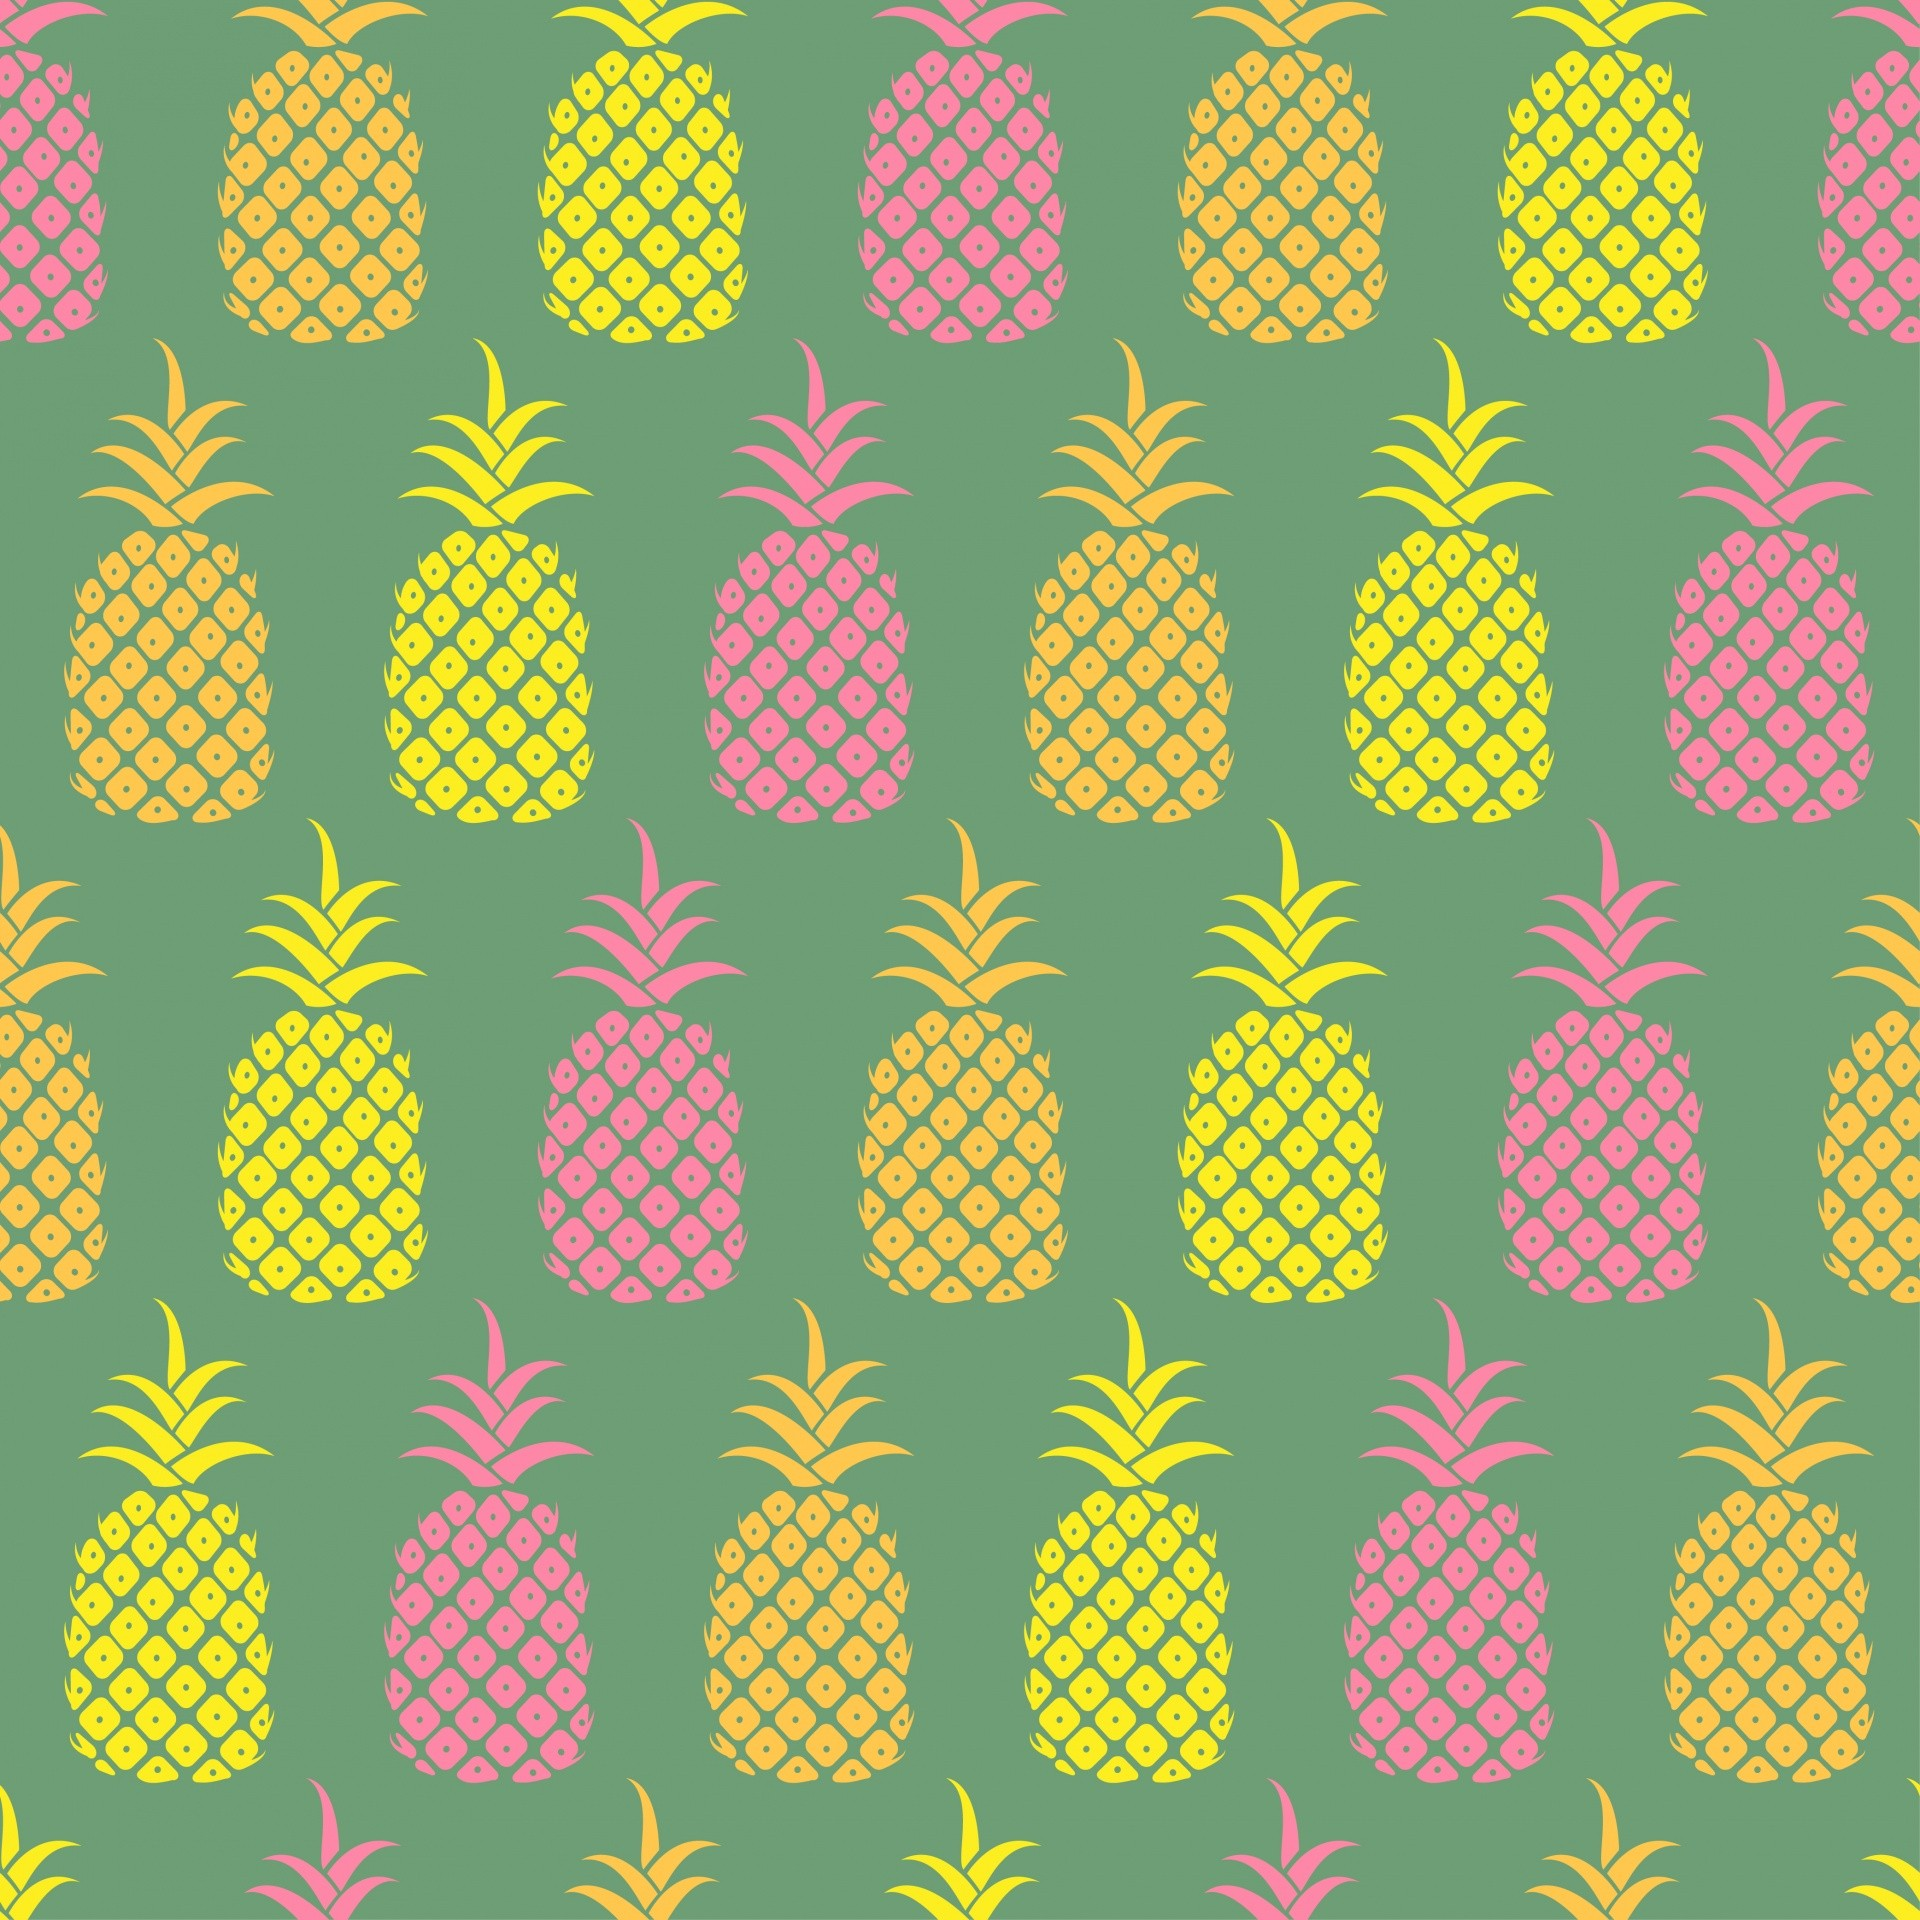 Pineapple Wallpaper Download Free Cool Hd Wallpapers Of HD Wallpapers Download Free Images Wallpaper [1000image.com]